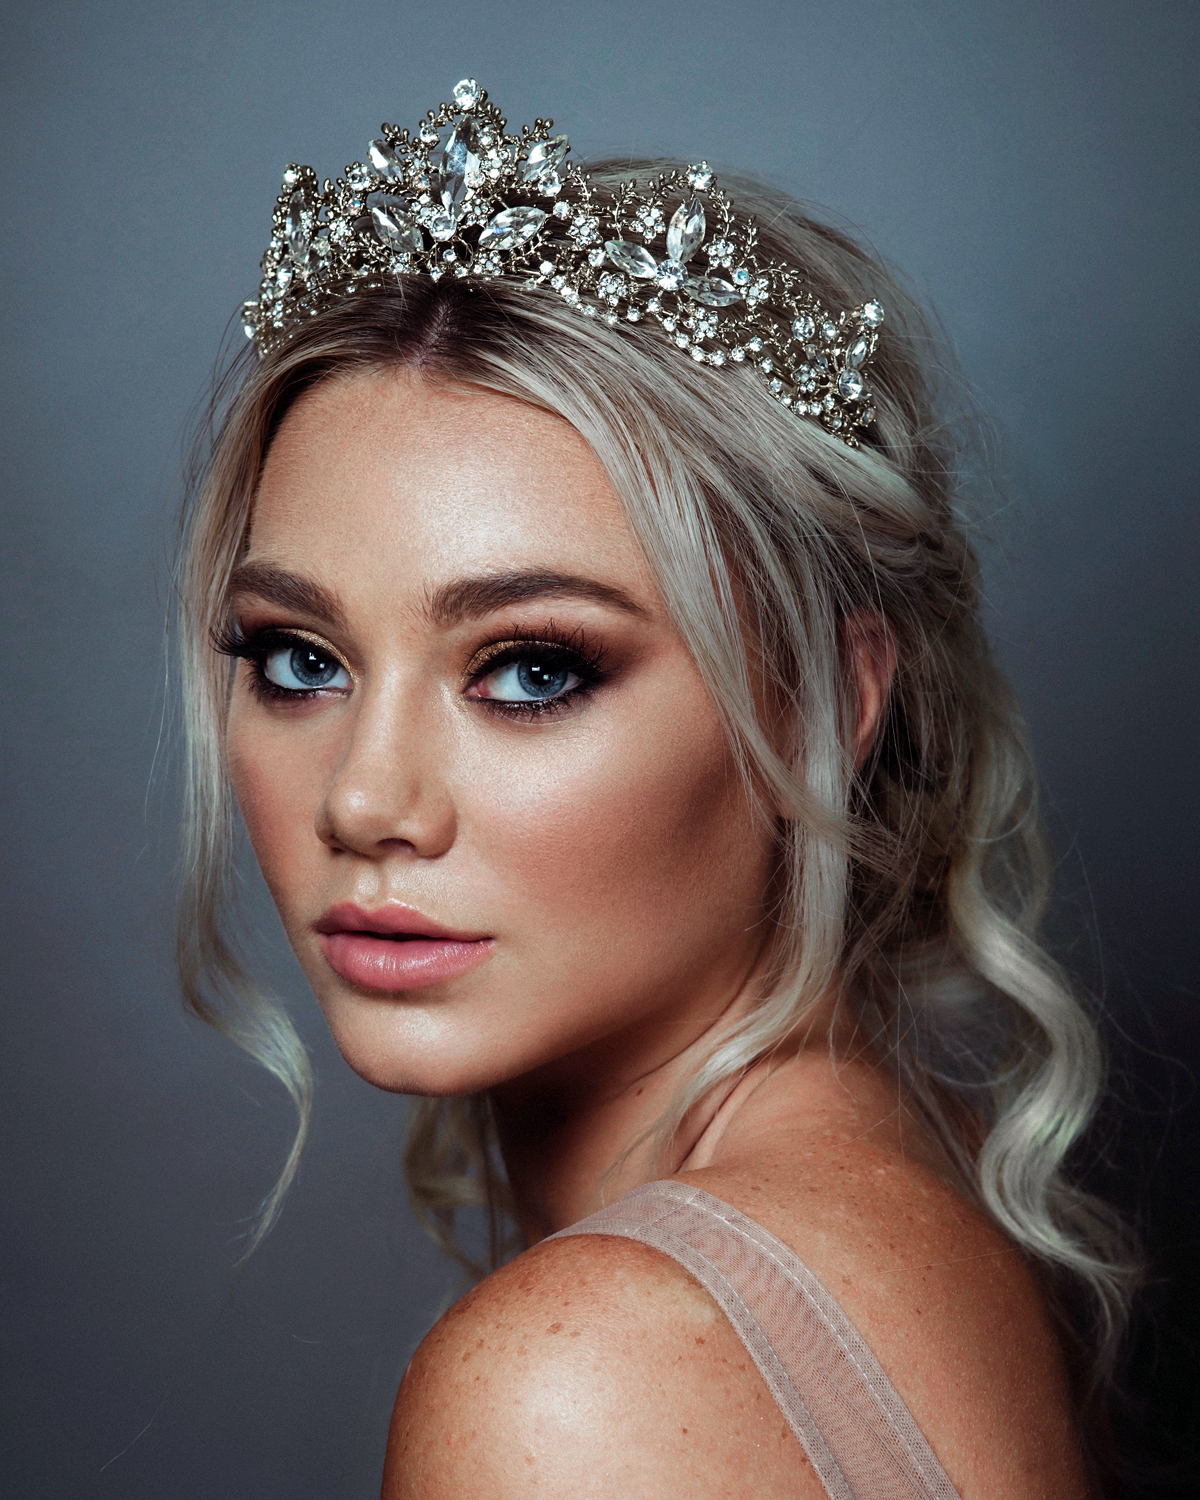 Wedding Day Hairstyles For Long Hair: Beautiful Bridal Headpiece Trends For 2019 And How To Wear